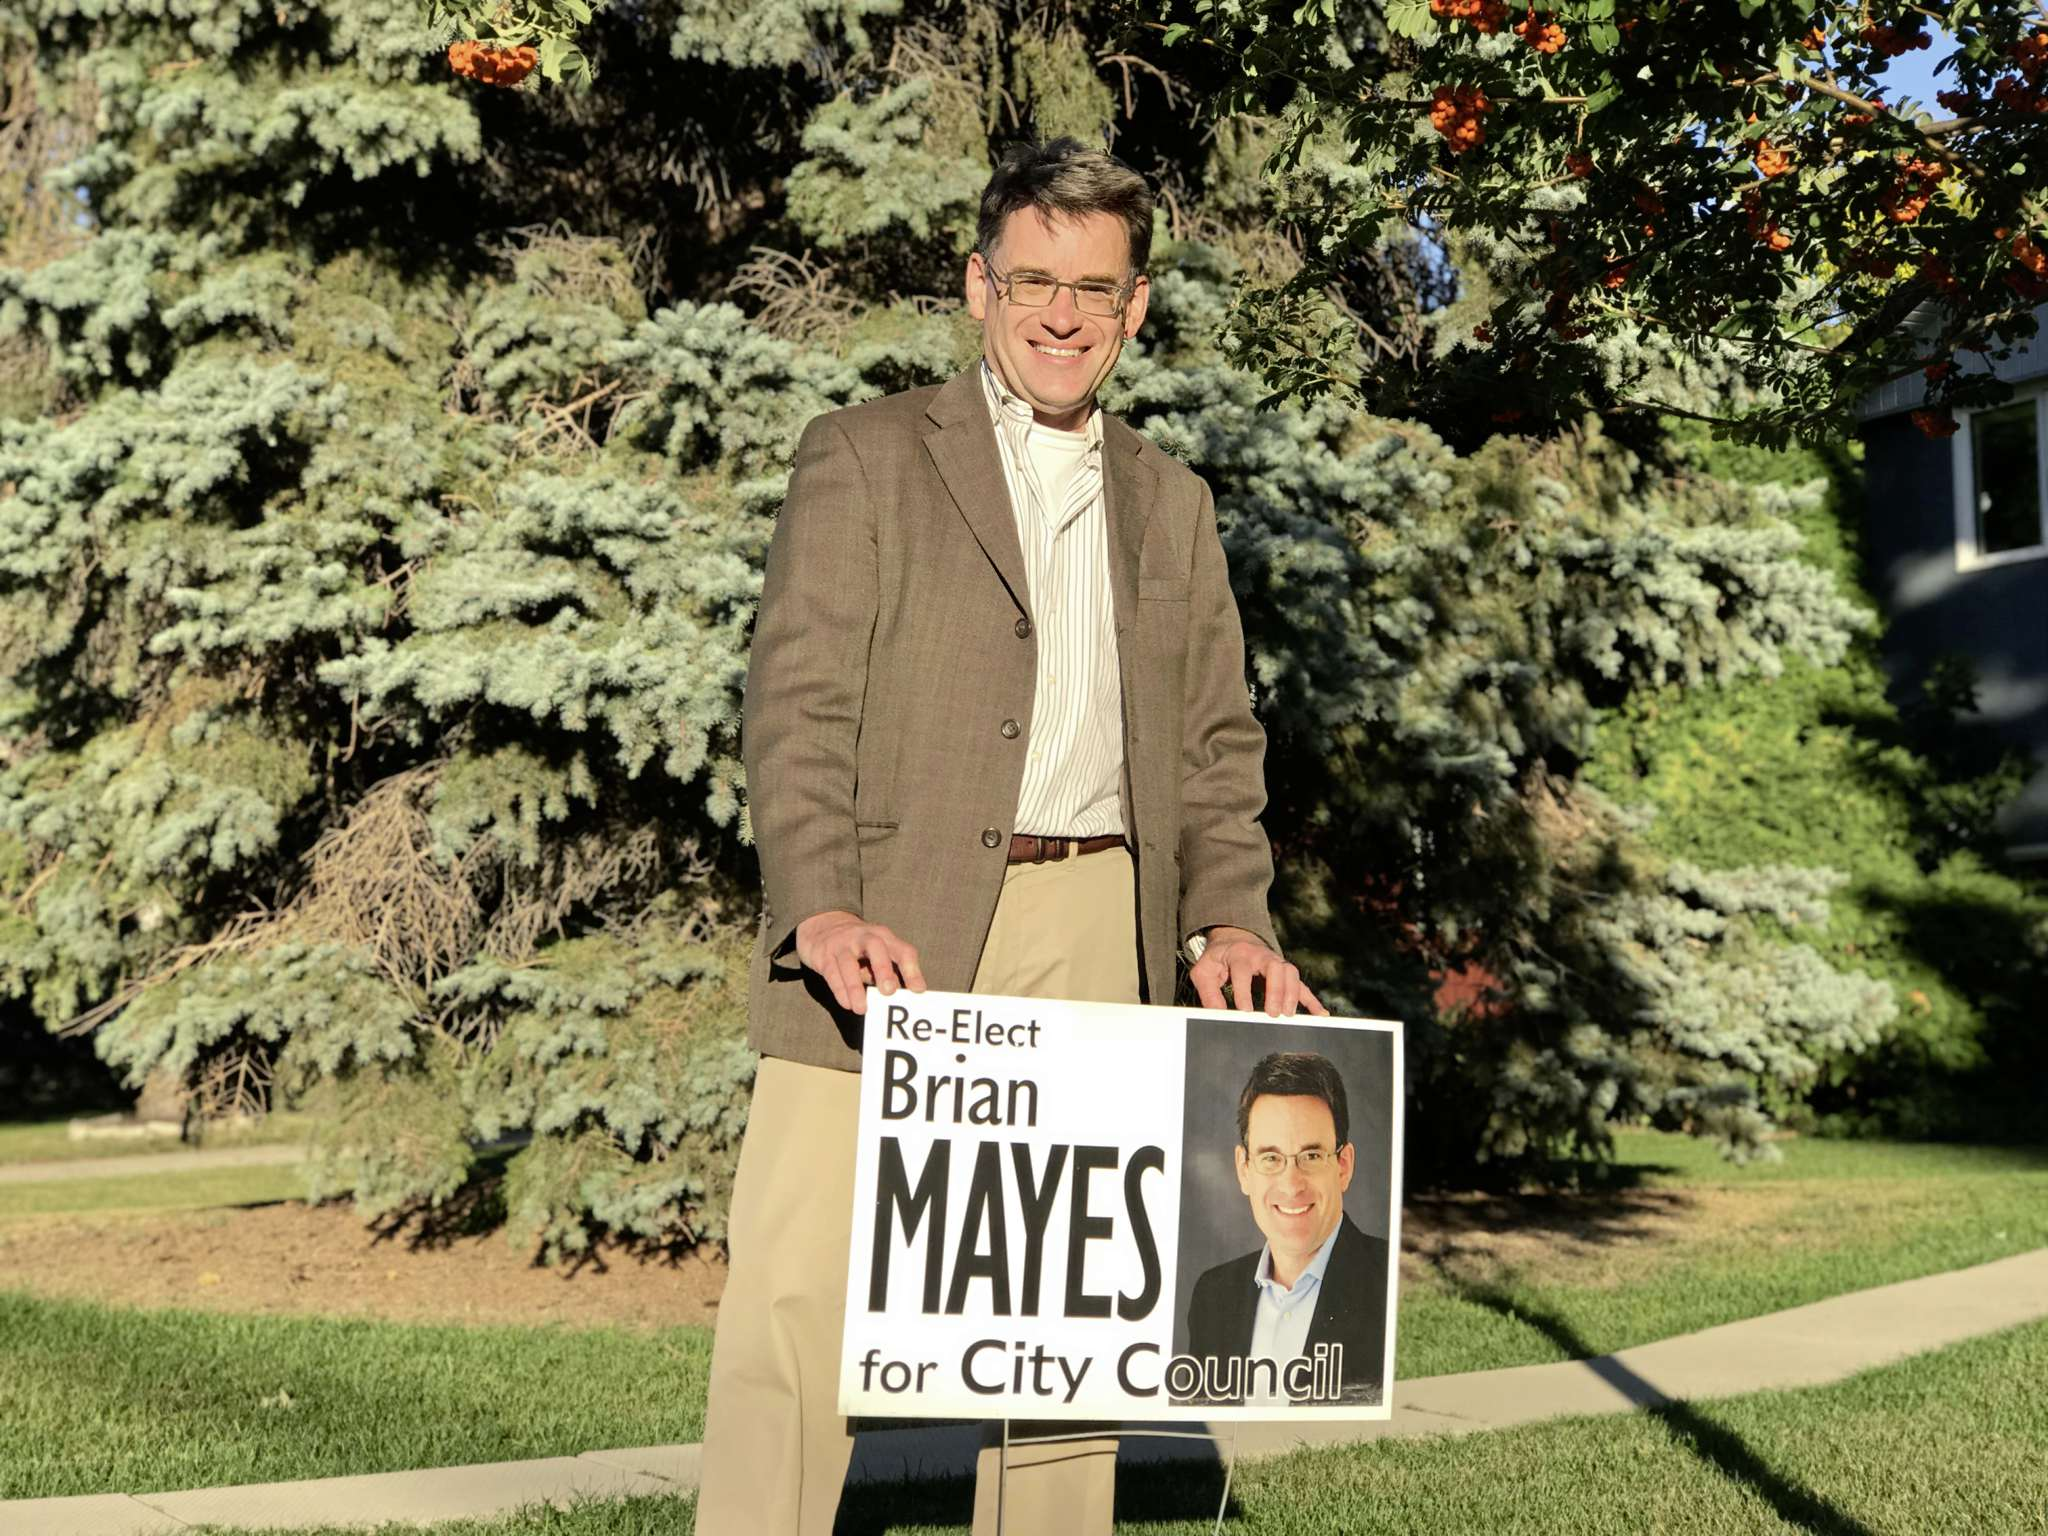 Coun. Brian Mayes (St. Vital) is pictured during his election campaign in St. Vital.